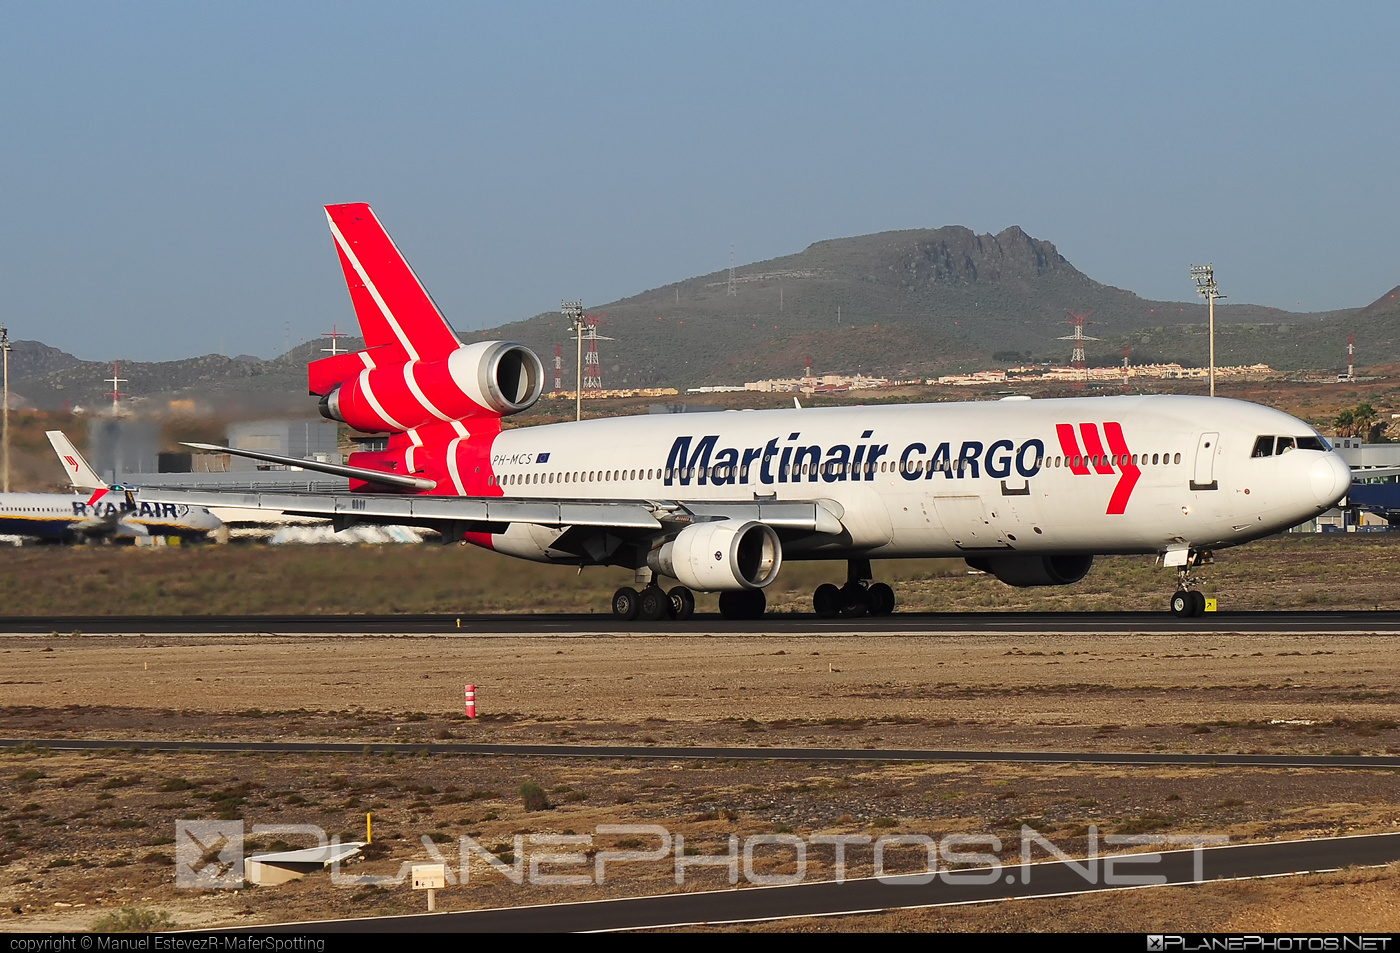 McDonnell Douglas MD-11CF - PH-MCS operated by Martinair Cargo #mcdonnelldouglas #mcdonnelldouglas11 #mcdonnelldouglas11cf #mcdonnelldouglasmd11 #mcdonnelldouglasmd11cf #md11 #md11cf